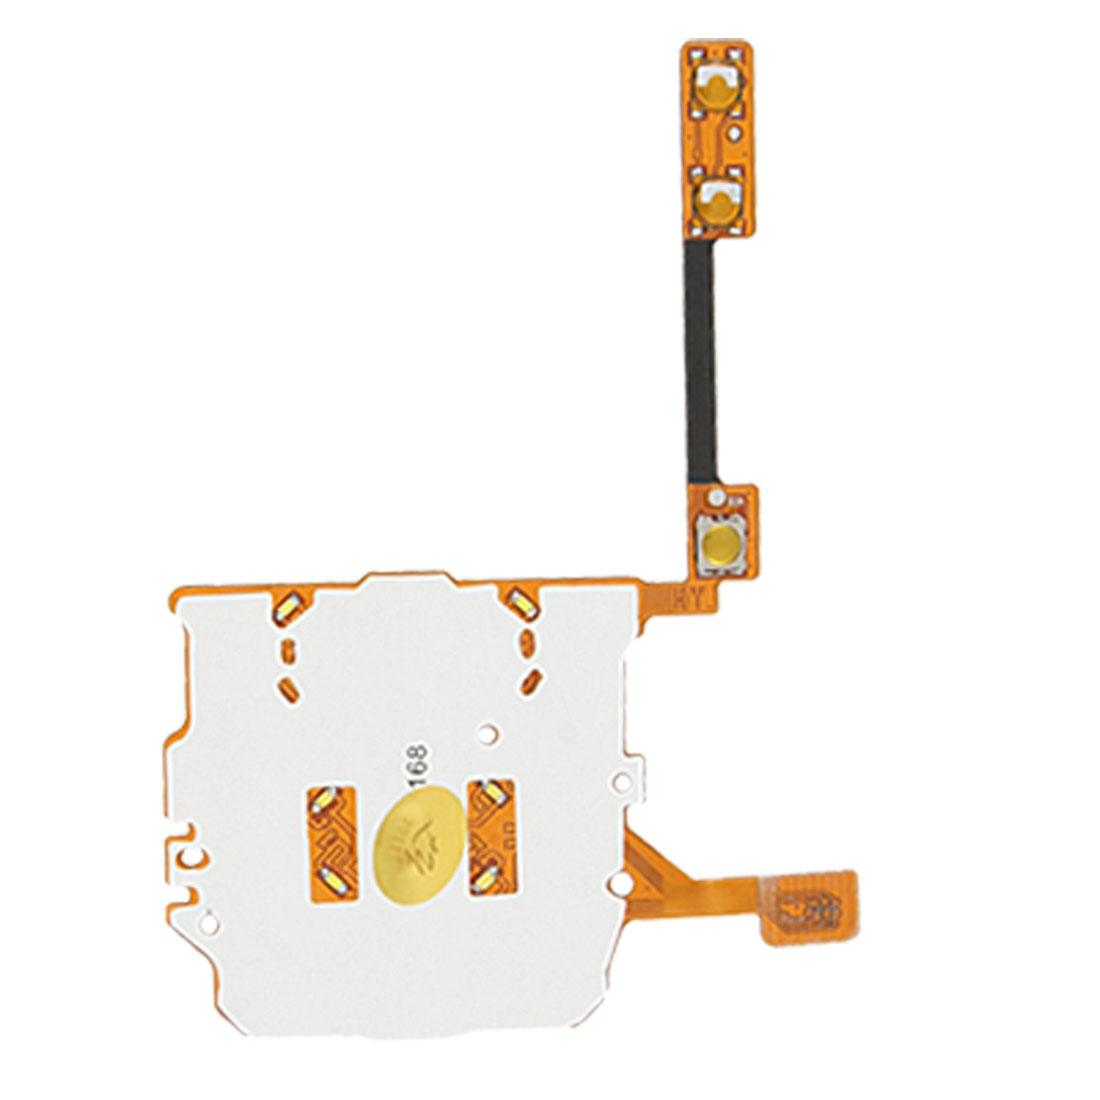 Repair Parts Membrane Keypad Flex Cable for Nokia 6208